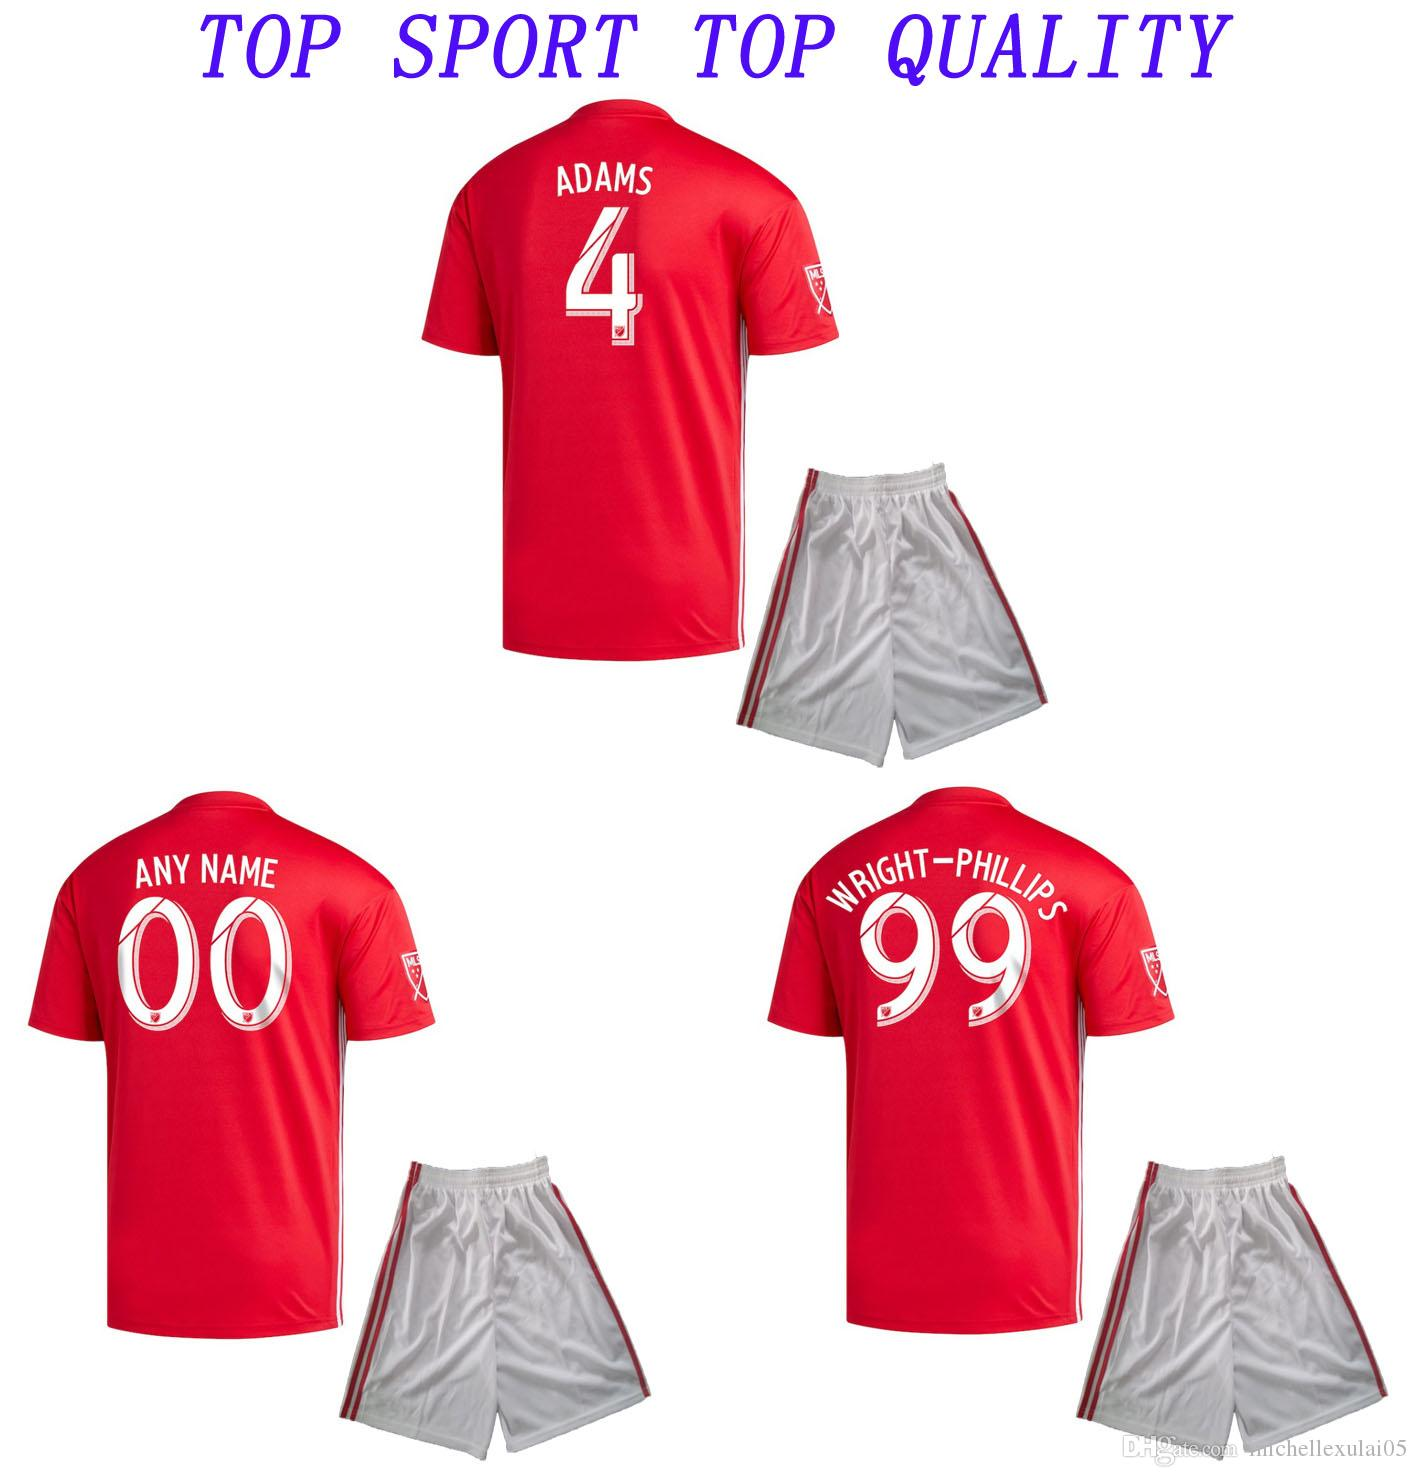 01c493a75e1 2019 2019 New York Soccer Jerseys Home Away Soccer Kits HENRY ADAMS WRIGHT  PHILLIPS Football Shirts Shorts 19 20 Adult Thai Quality Football Sets From  ...